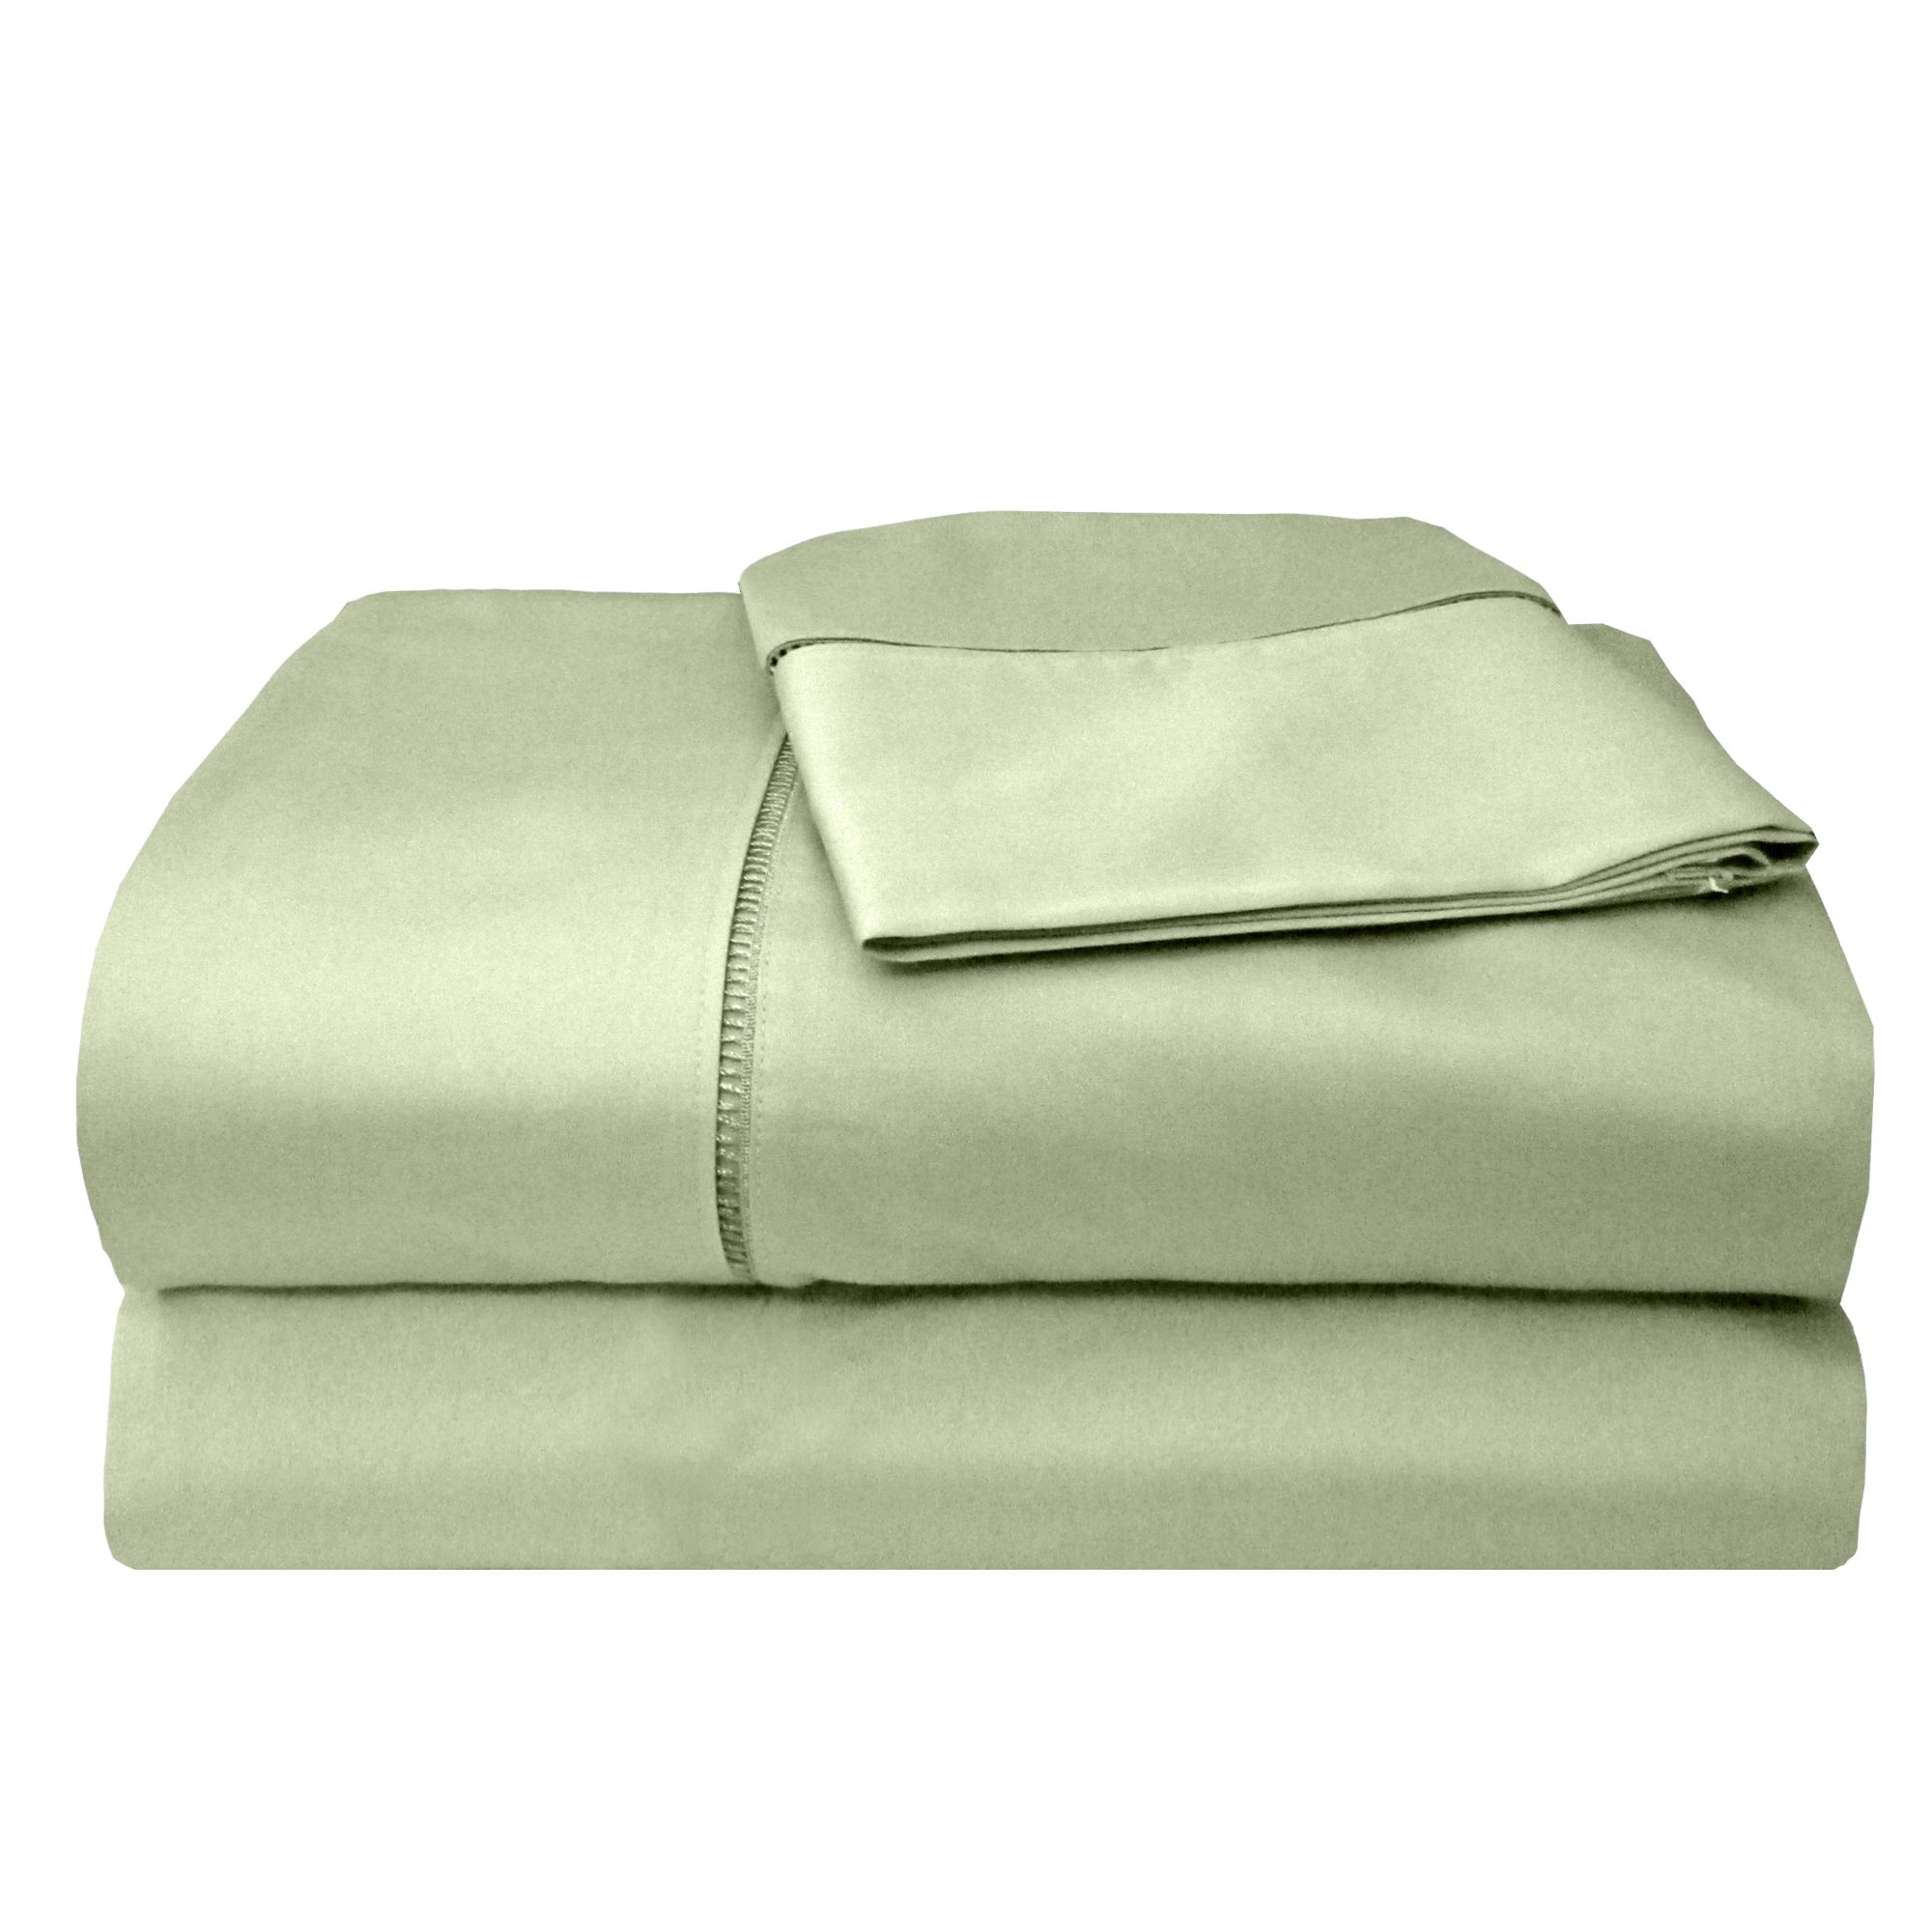 Veratex Legacy Collection 300 Thread Count 100% Egyptian Cotton Sateen Bed Sheet Set With Elegant Stitch Hem Design, California King Size, Sage